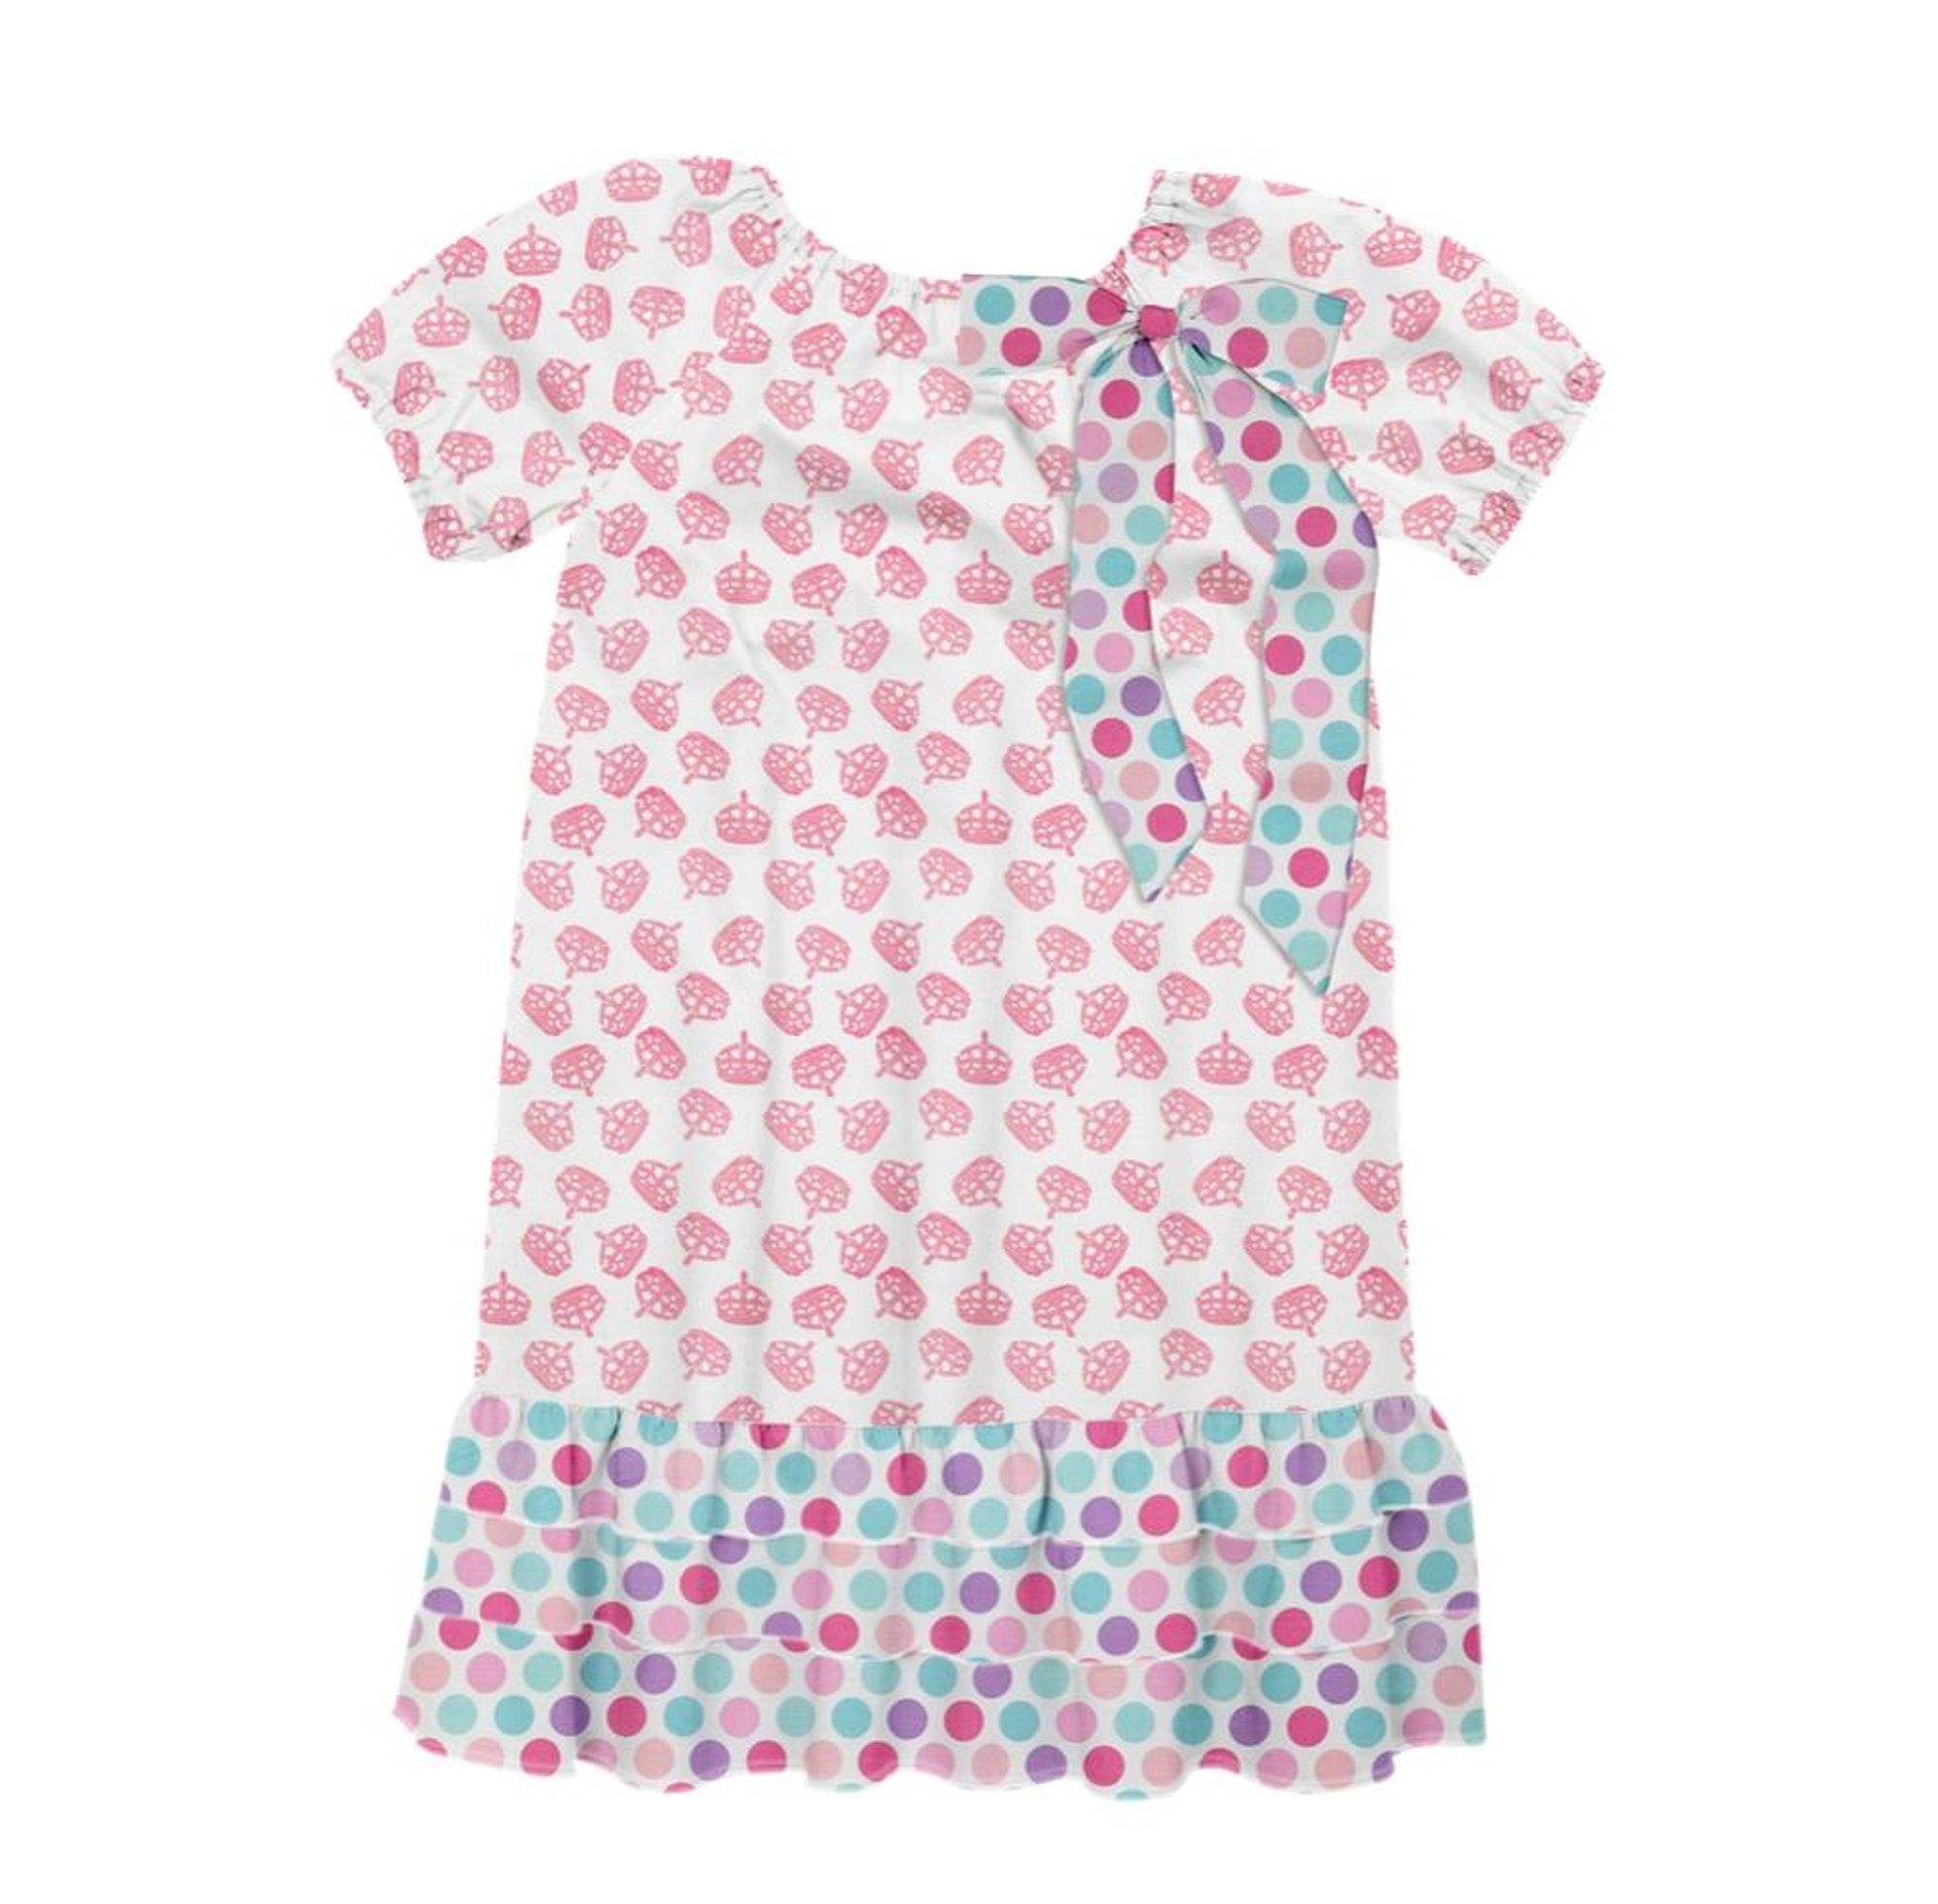 Check out this super cute dress Elisa Von Perger created on Designed By Me from Lolly Wolly Doodle!